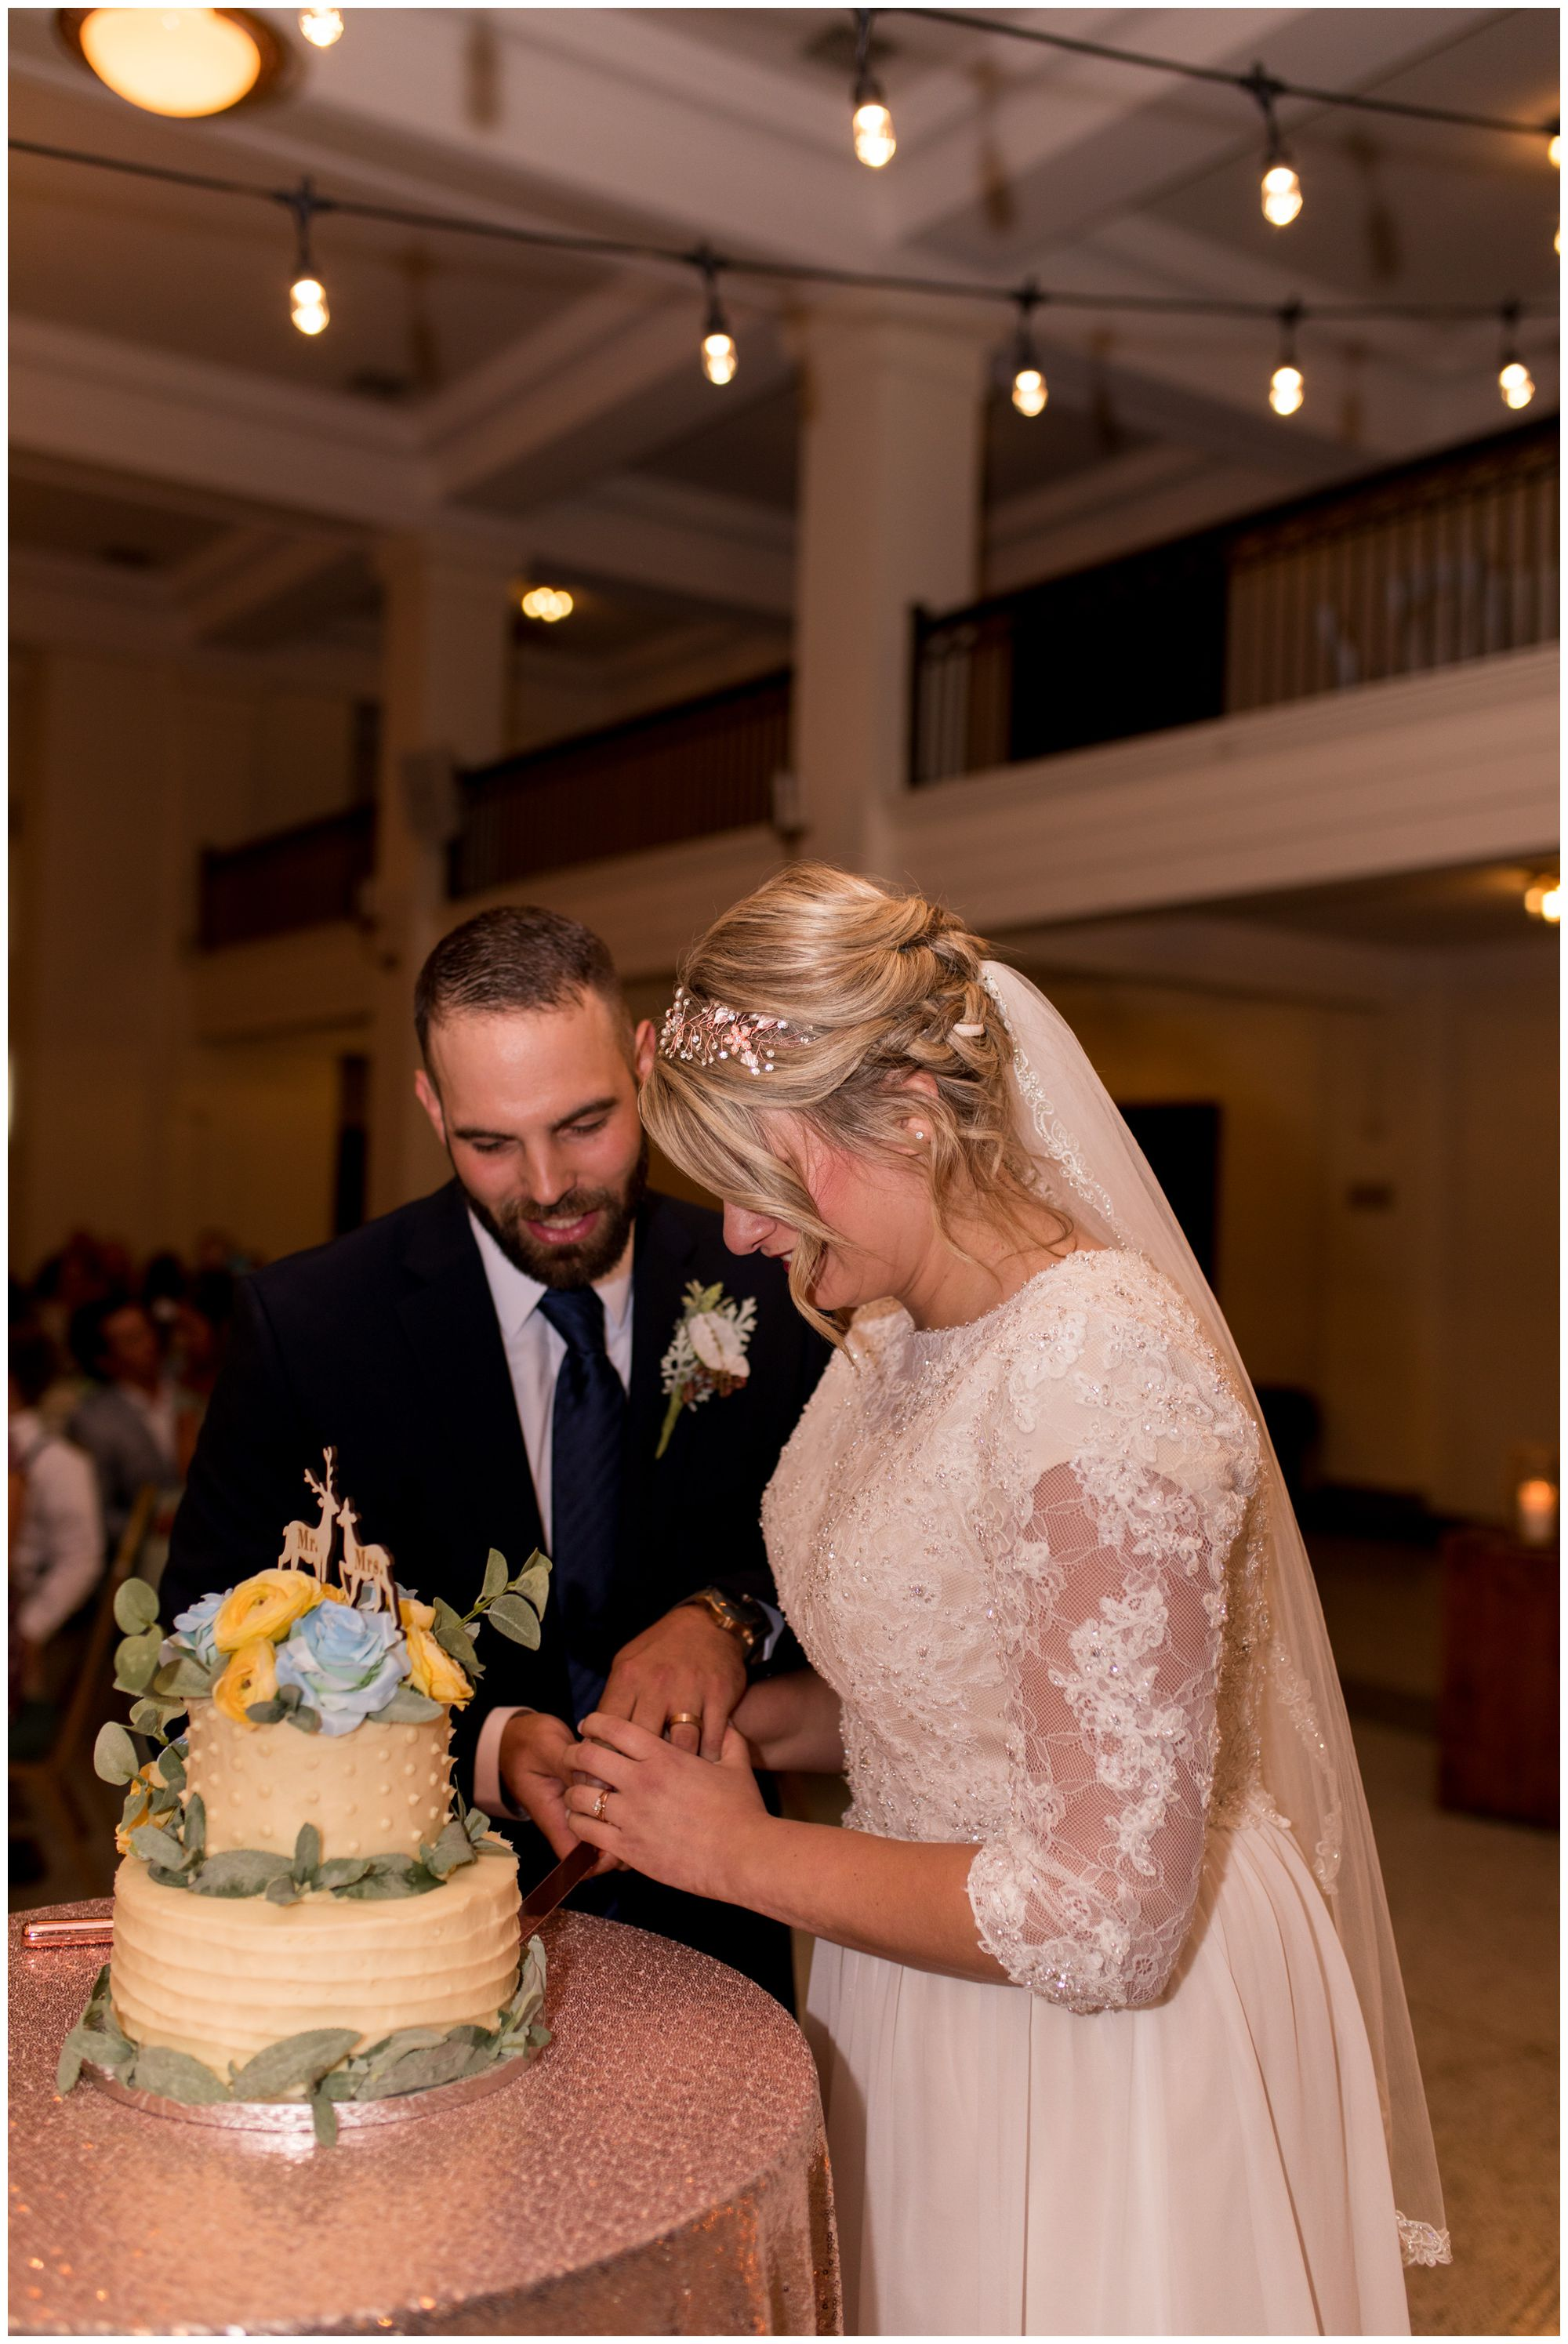 bride and groom cut wedding cake at Cornerstone Center for the Arts in Muncie Indiana